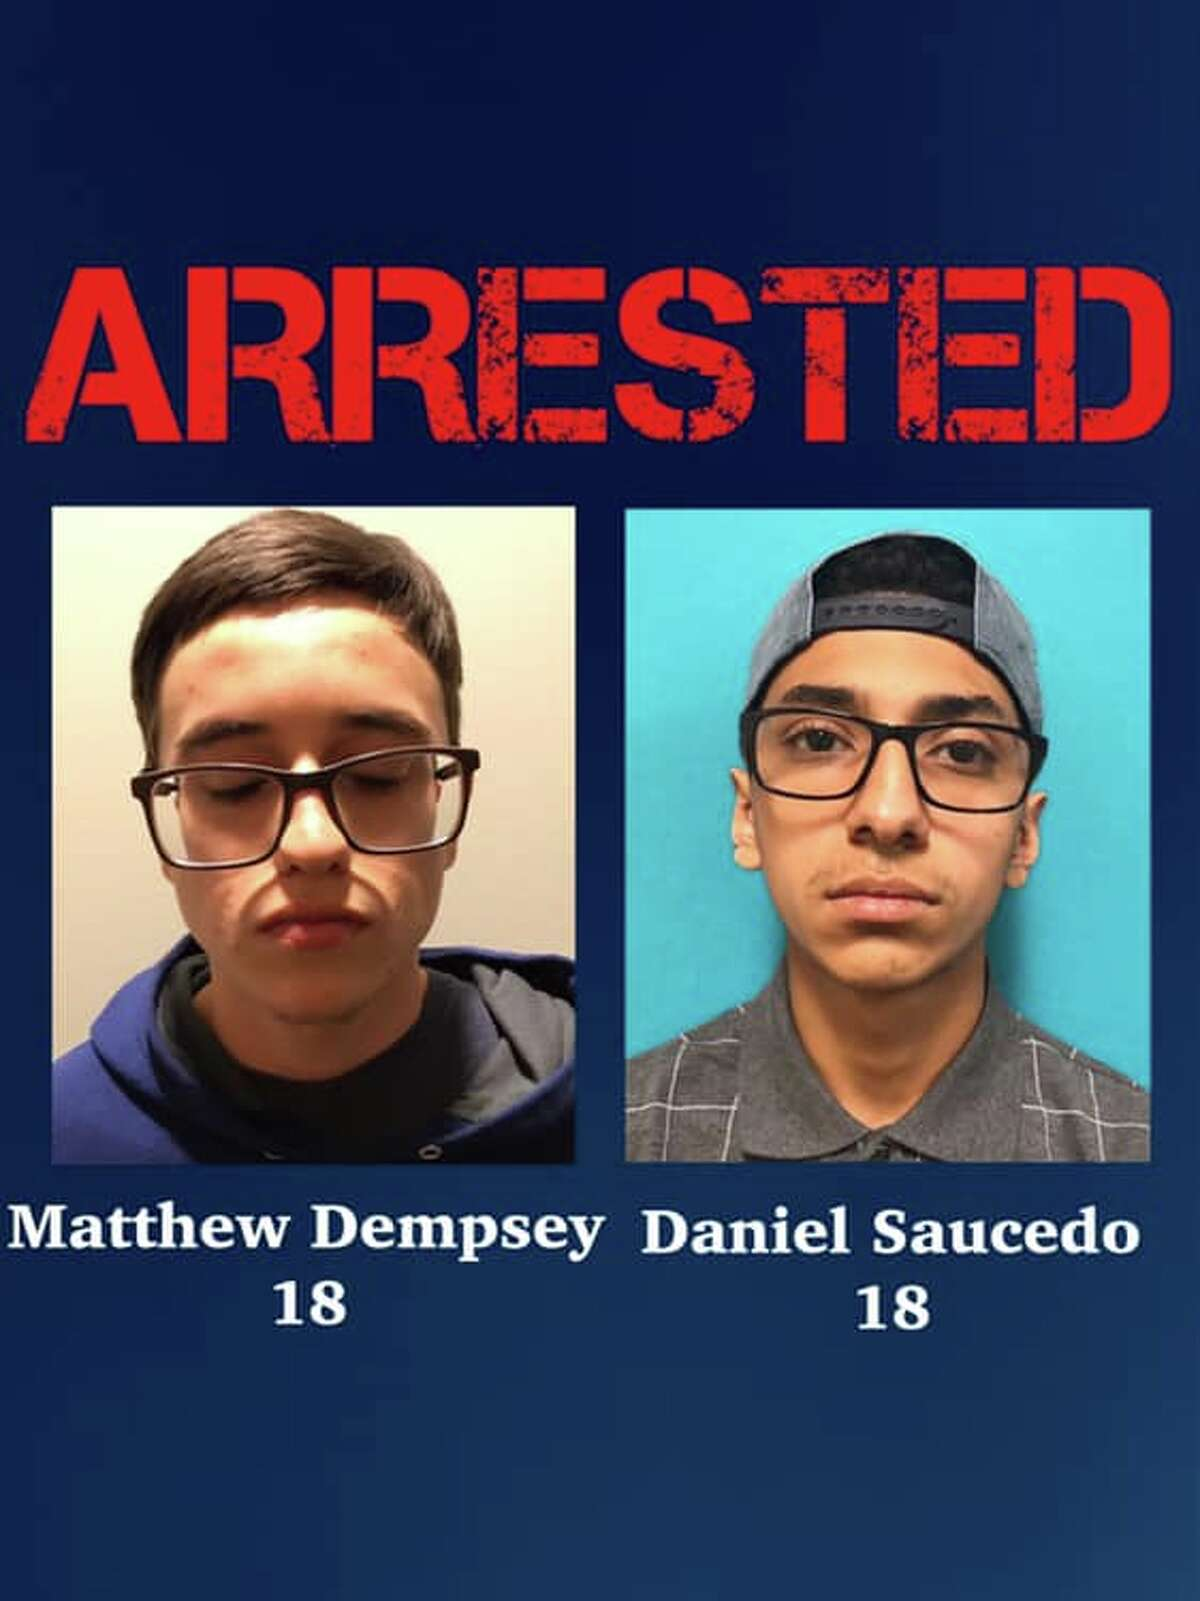 Daniel Saucedo, 18, now faces a charge of capital murder in the death of Mary Dempsey. Dempsey's son, Matthew, was arrested Tuesday in connection to her death.